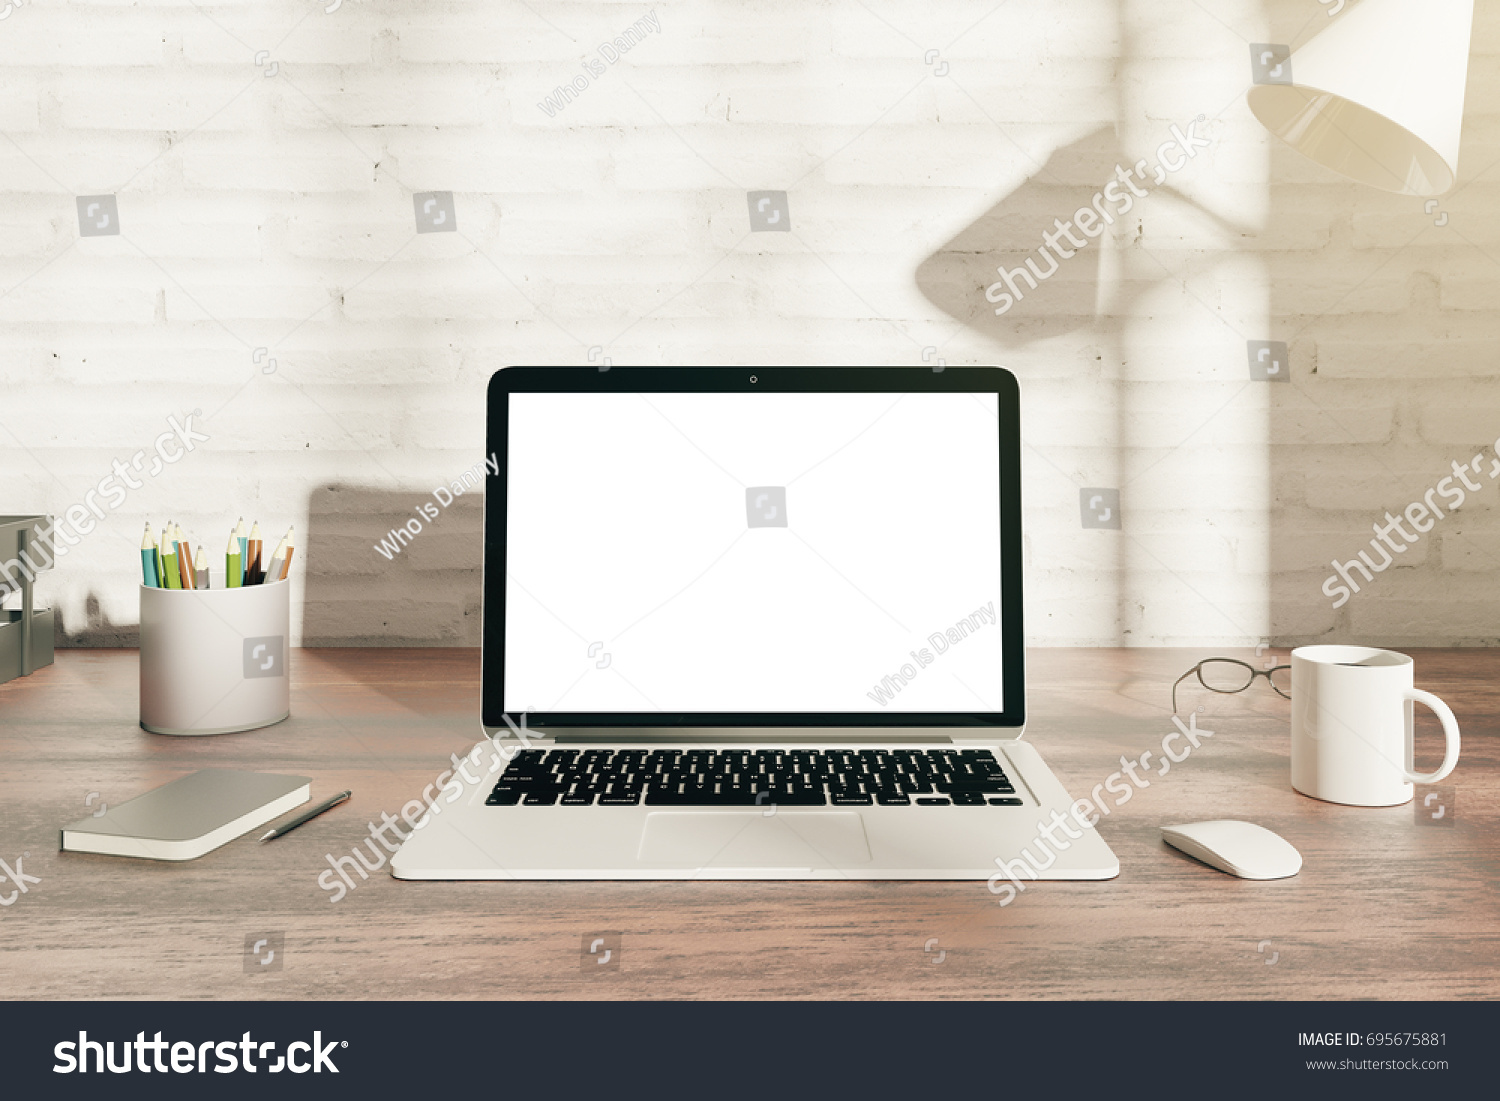 Plain wood table with hipster brick wall background stock photo - Front View Of Wooden Hipster Office Desk Top With Blank White Laptop Display Coffee Cup